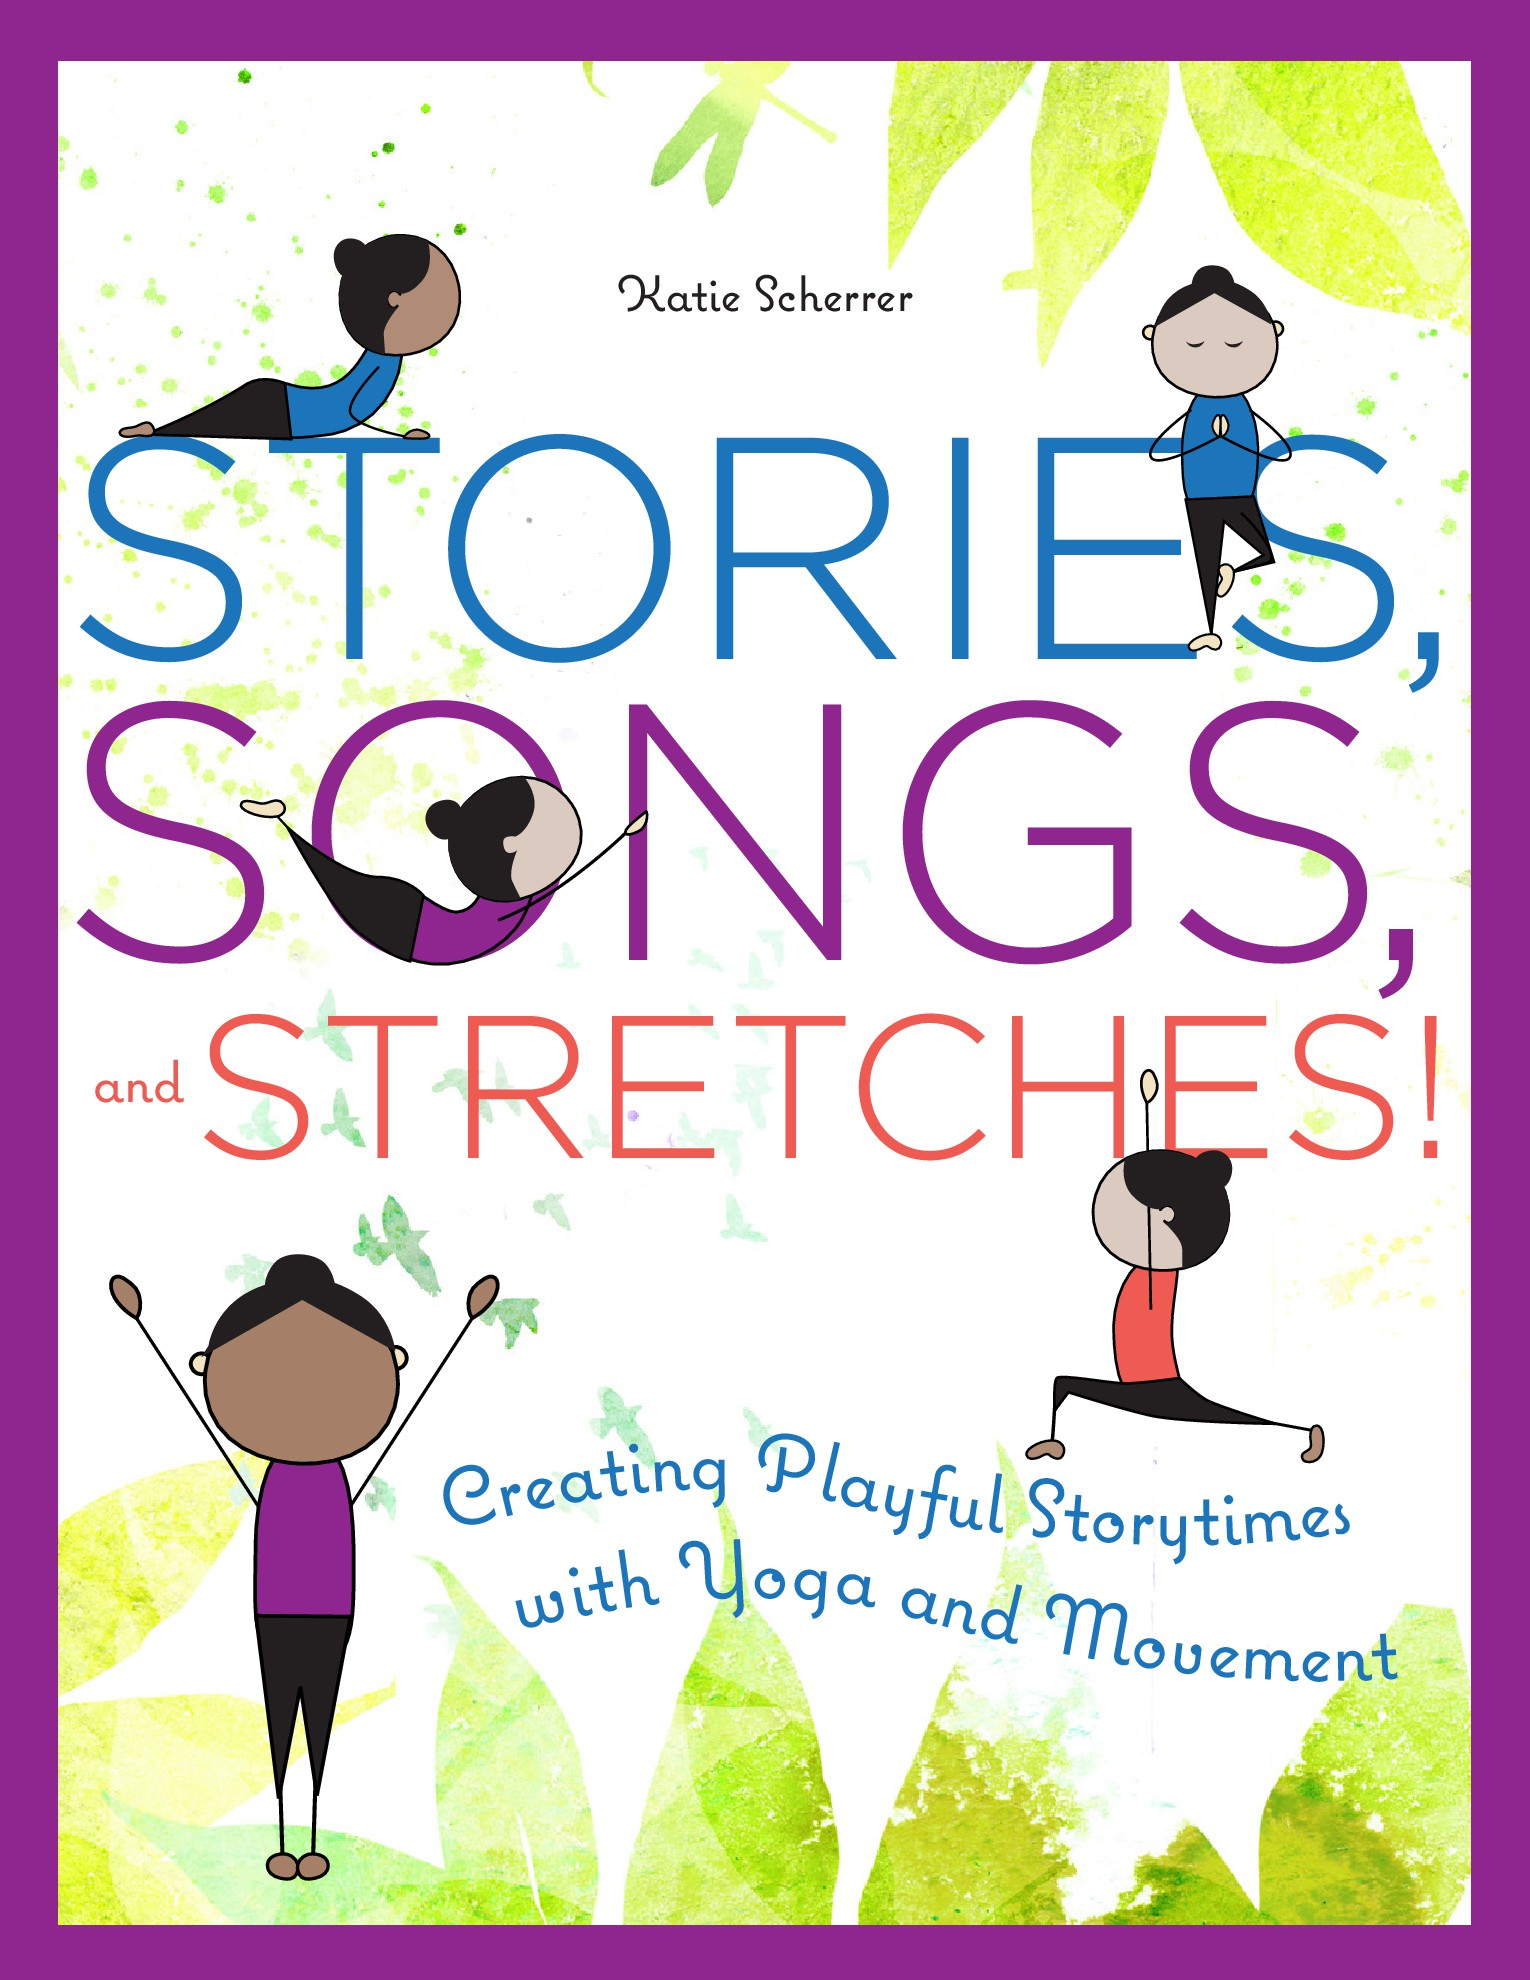 My Yoga Storytime Book is Now Available for Preorder!